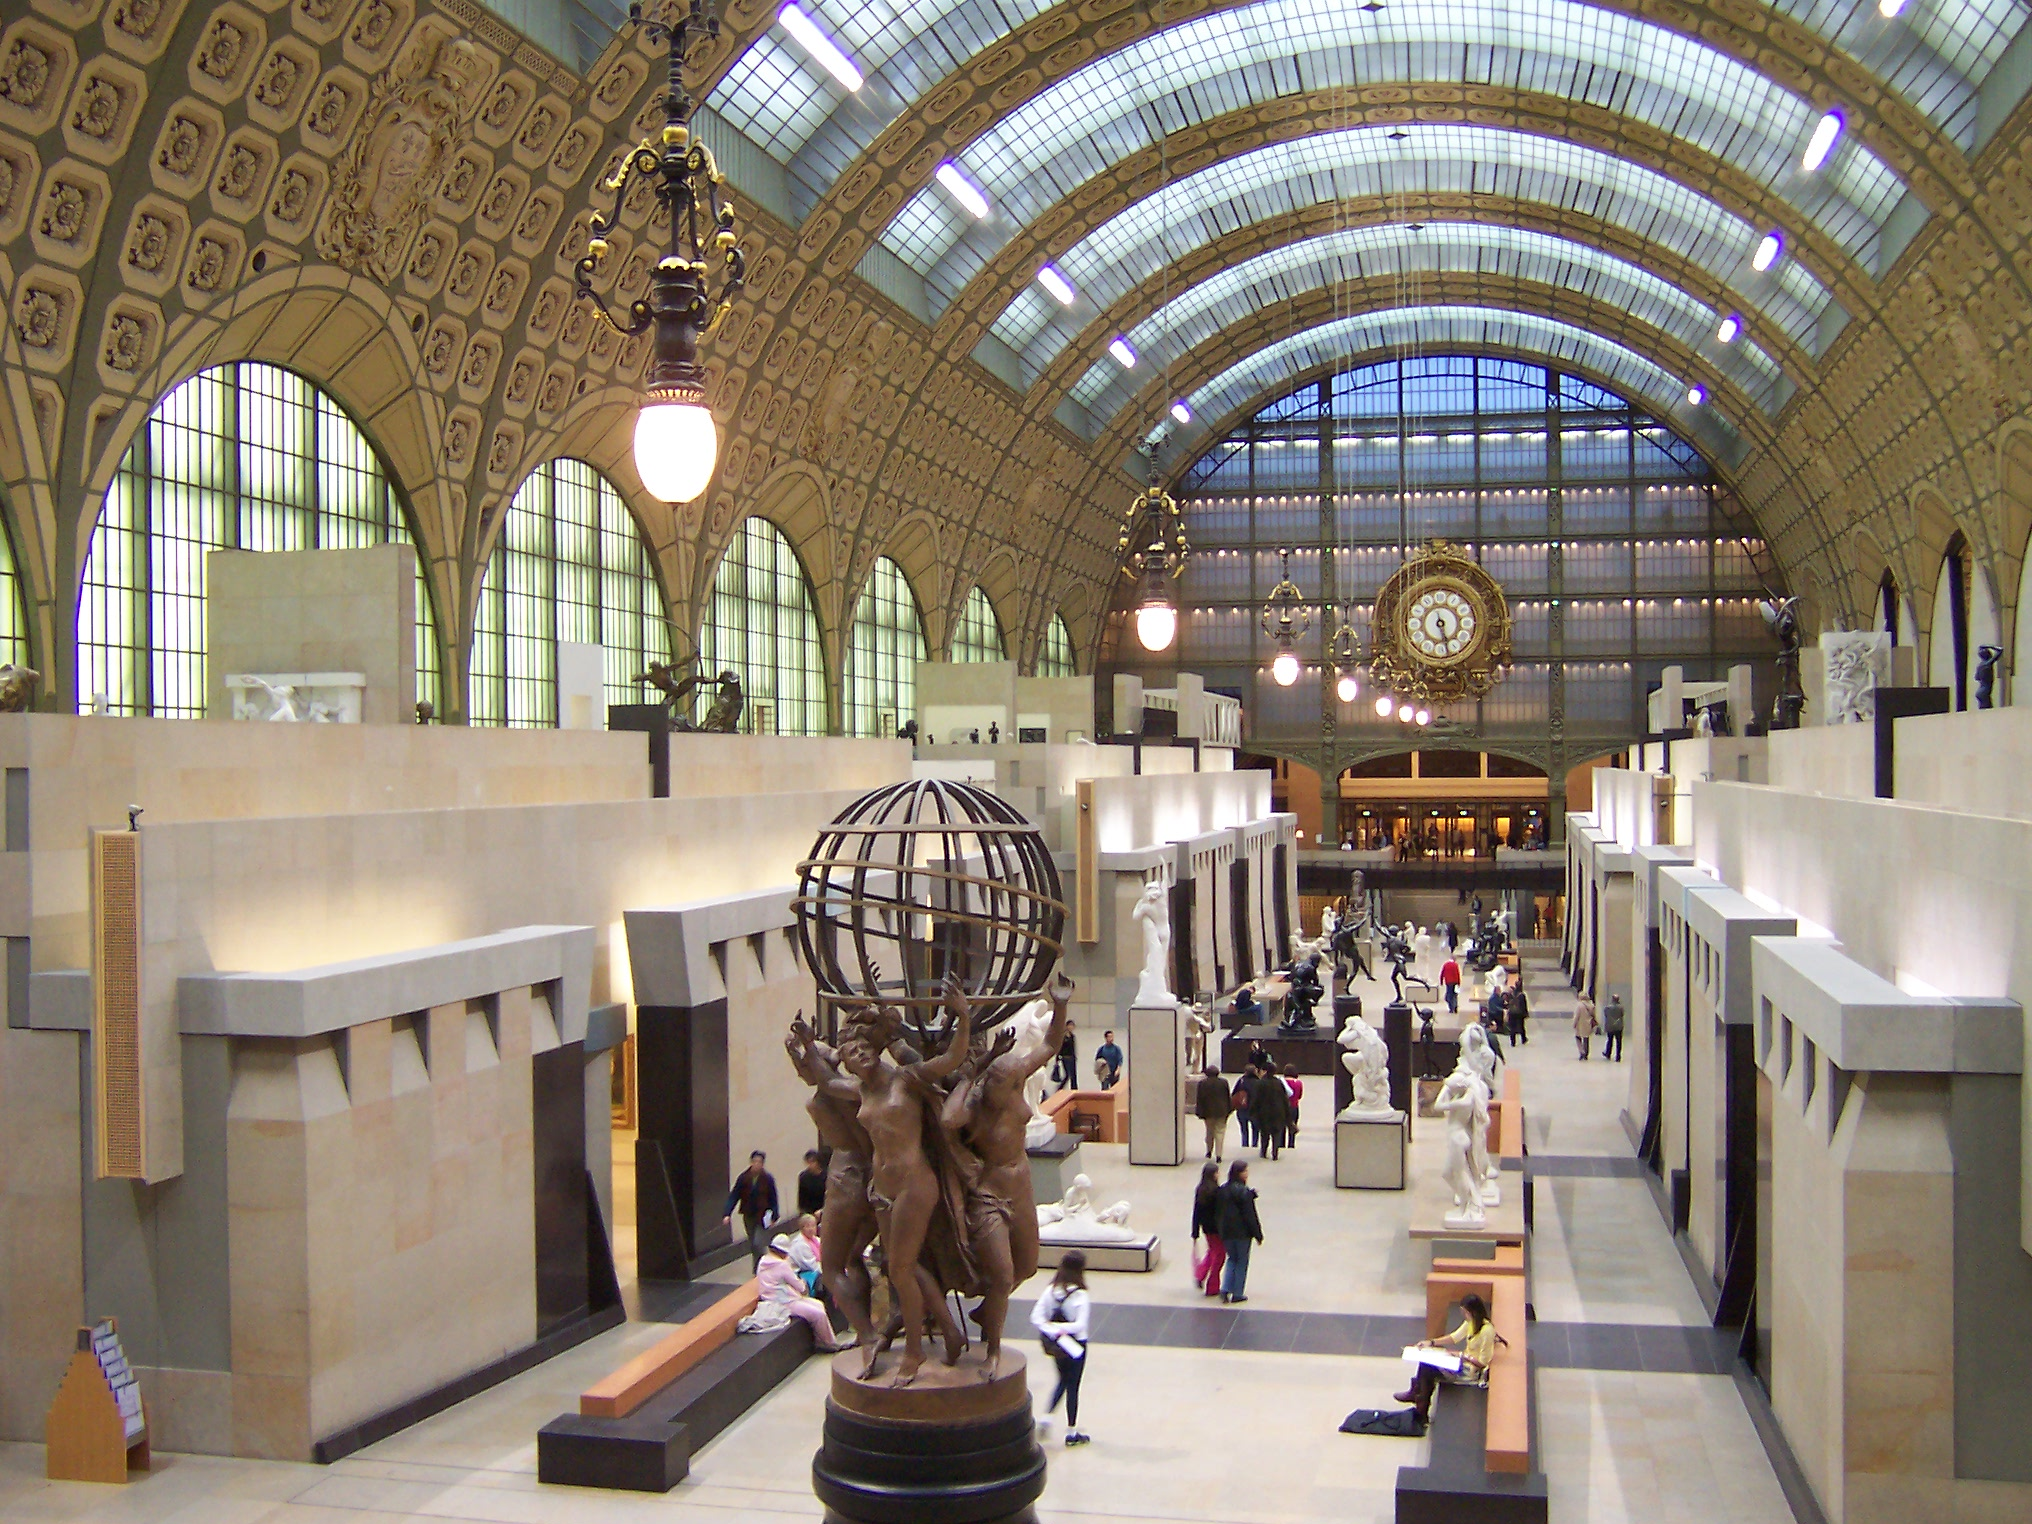 Mus e d 39 orsay wikiwand - Musee d orsay expo ...